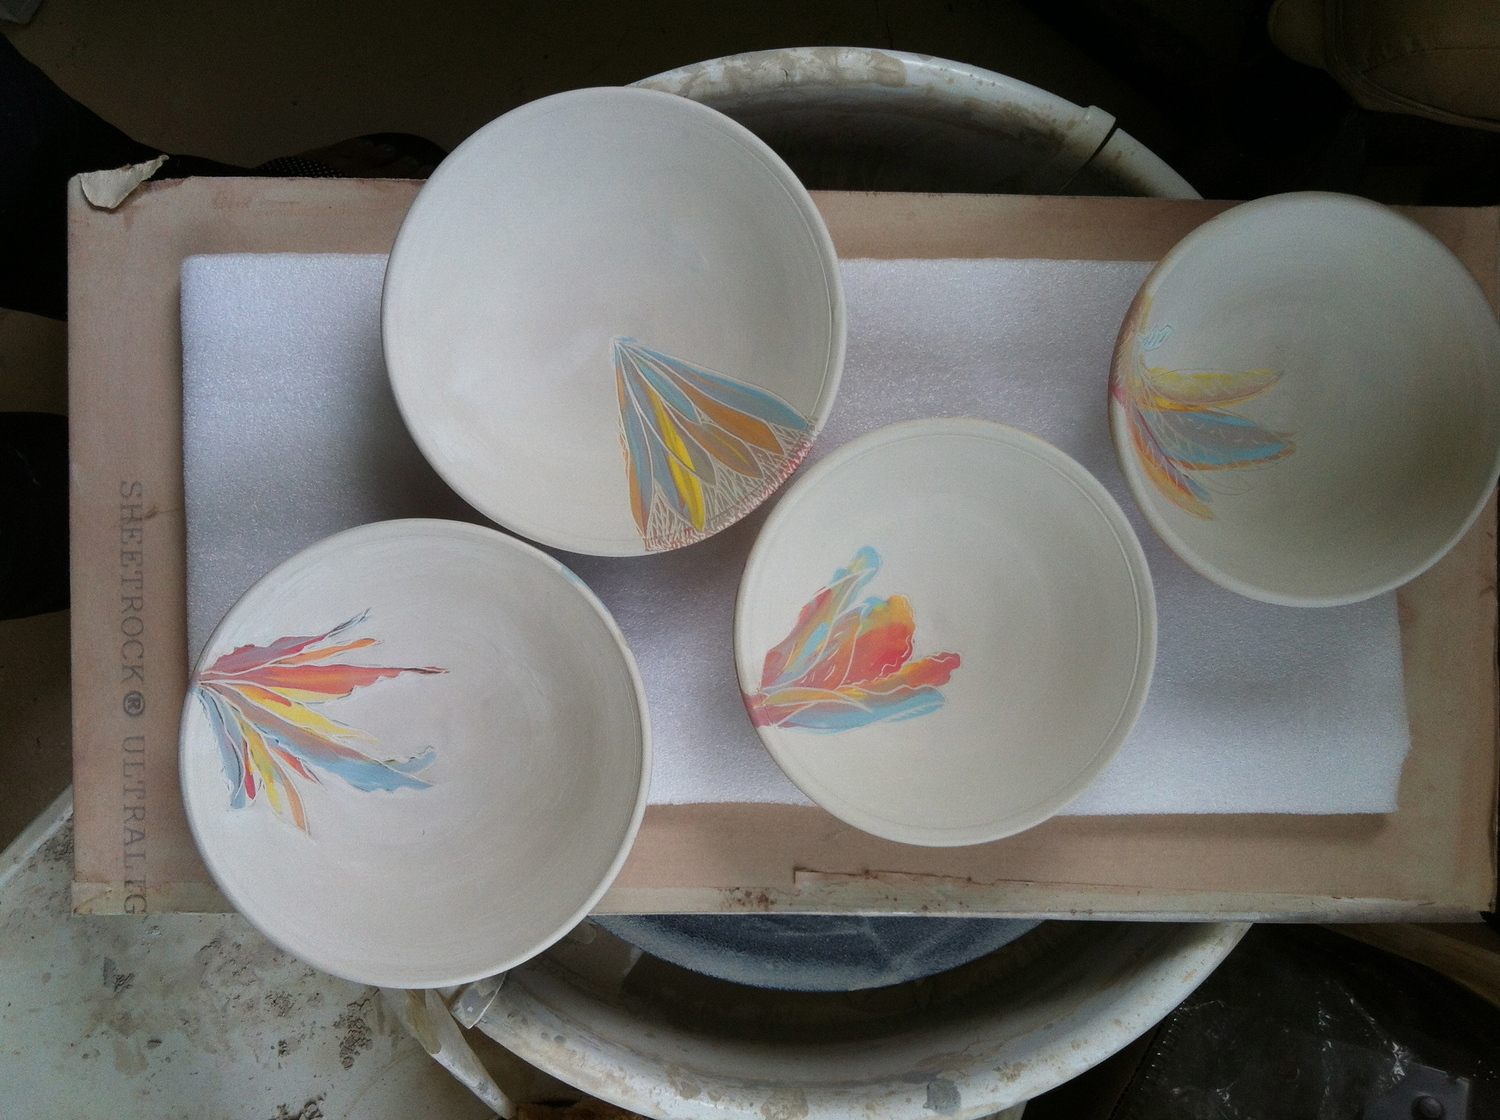 Inside each bowl is an accent that echoes the spirit of the exterior.